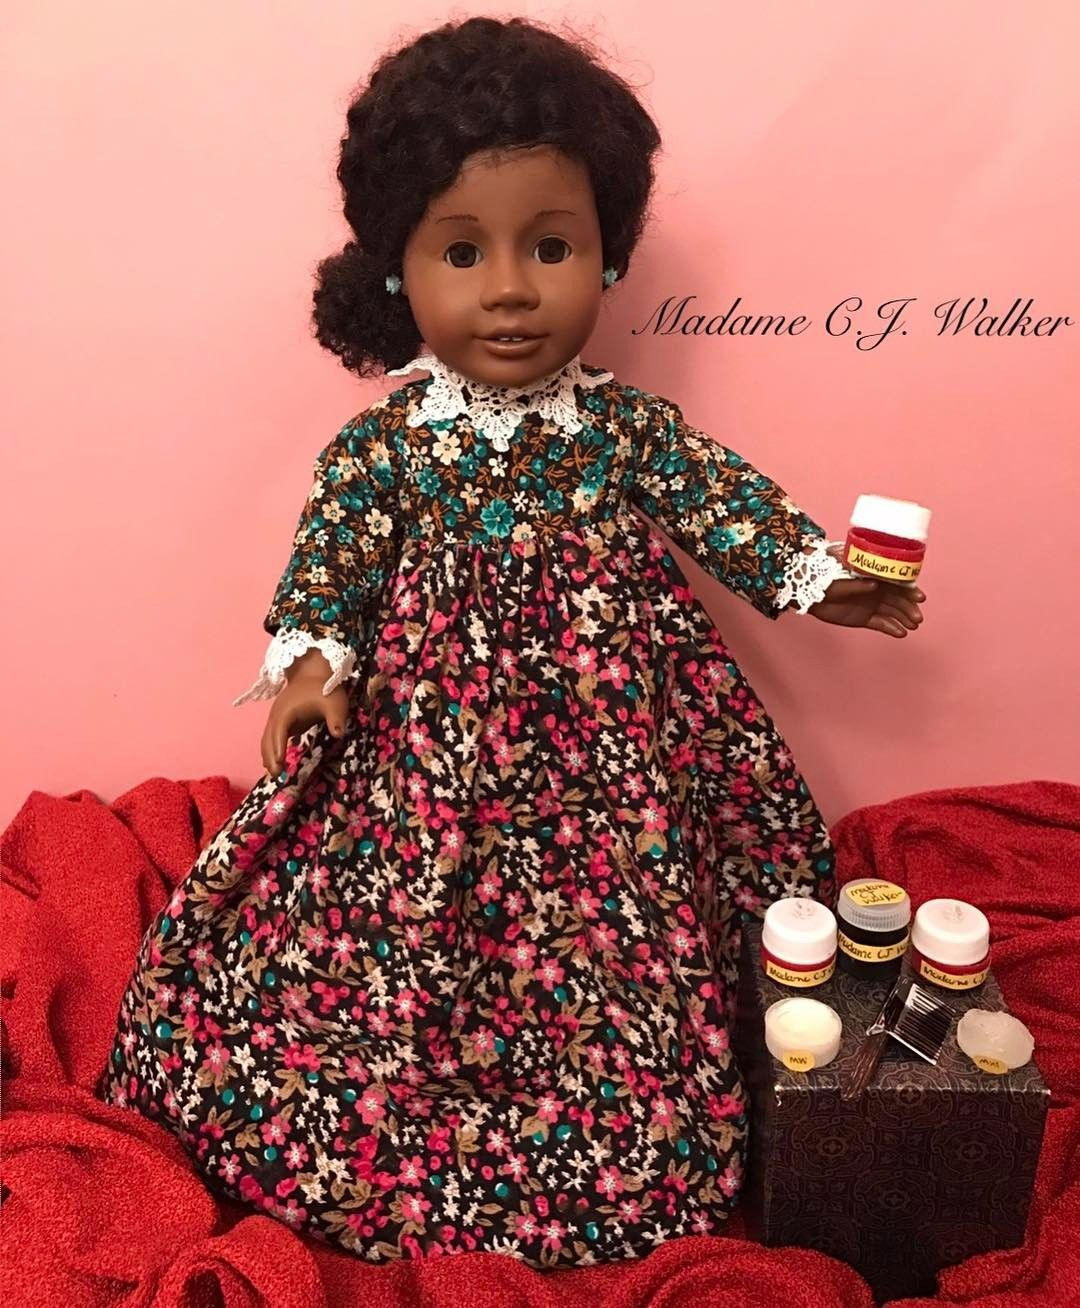 Our third entry for onemoredollgiveaway2 Madame C.J